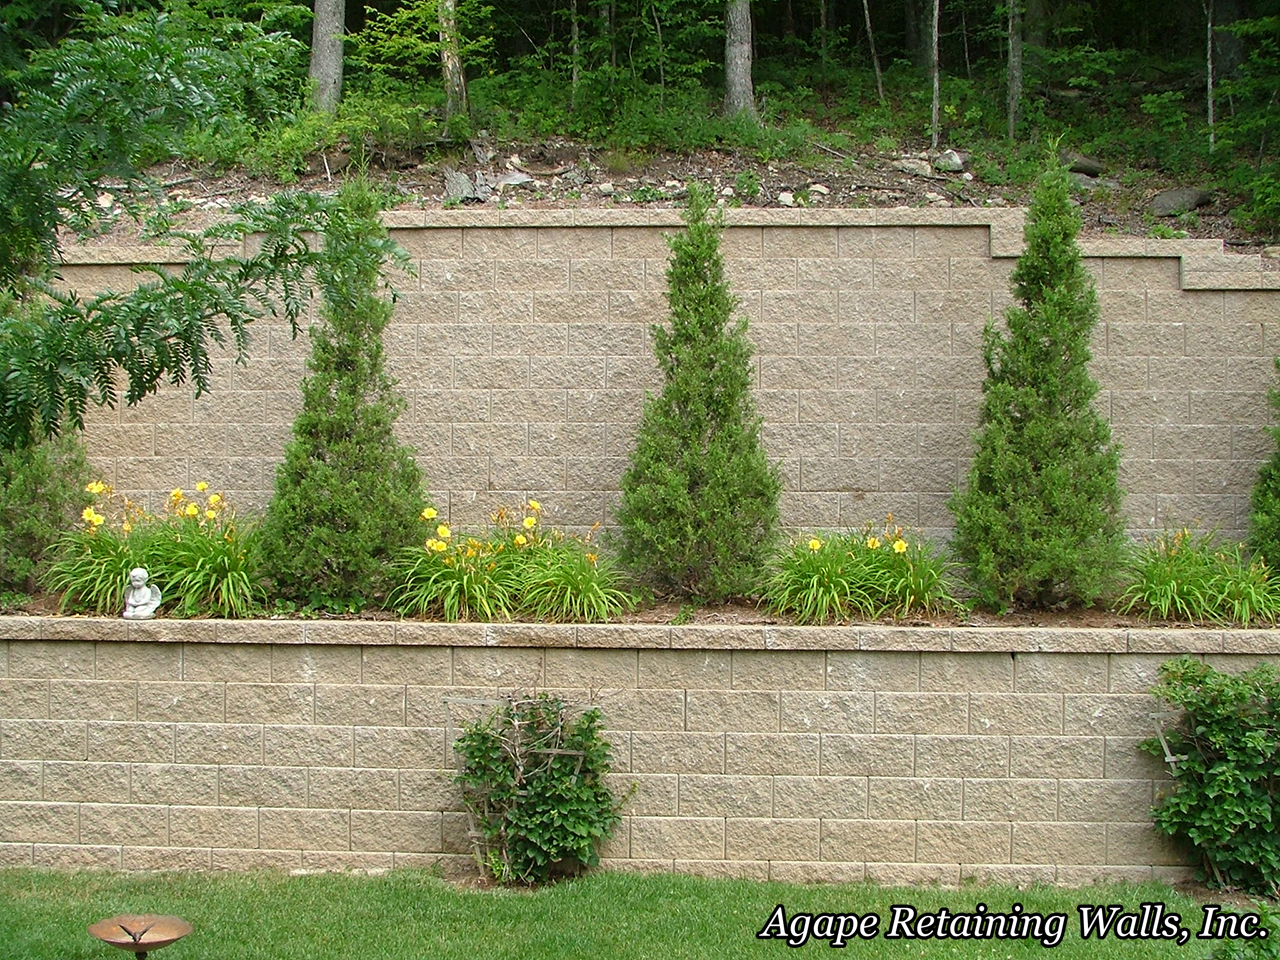 When I Say That We At Agape Retaining Walls, Inc. Are U201csimply The Bestu201d  This Job States My Case As Well As Any. Our Retaining Wall Design And  Installation ...